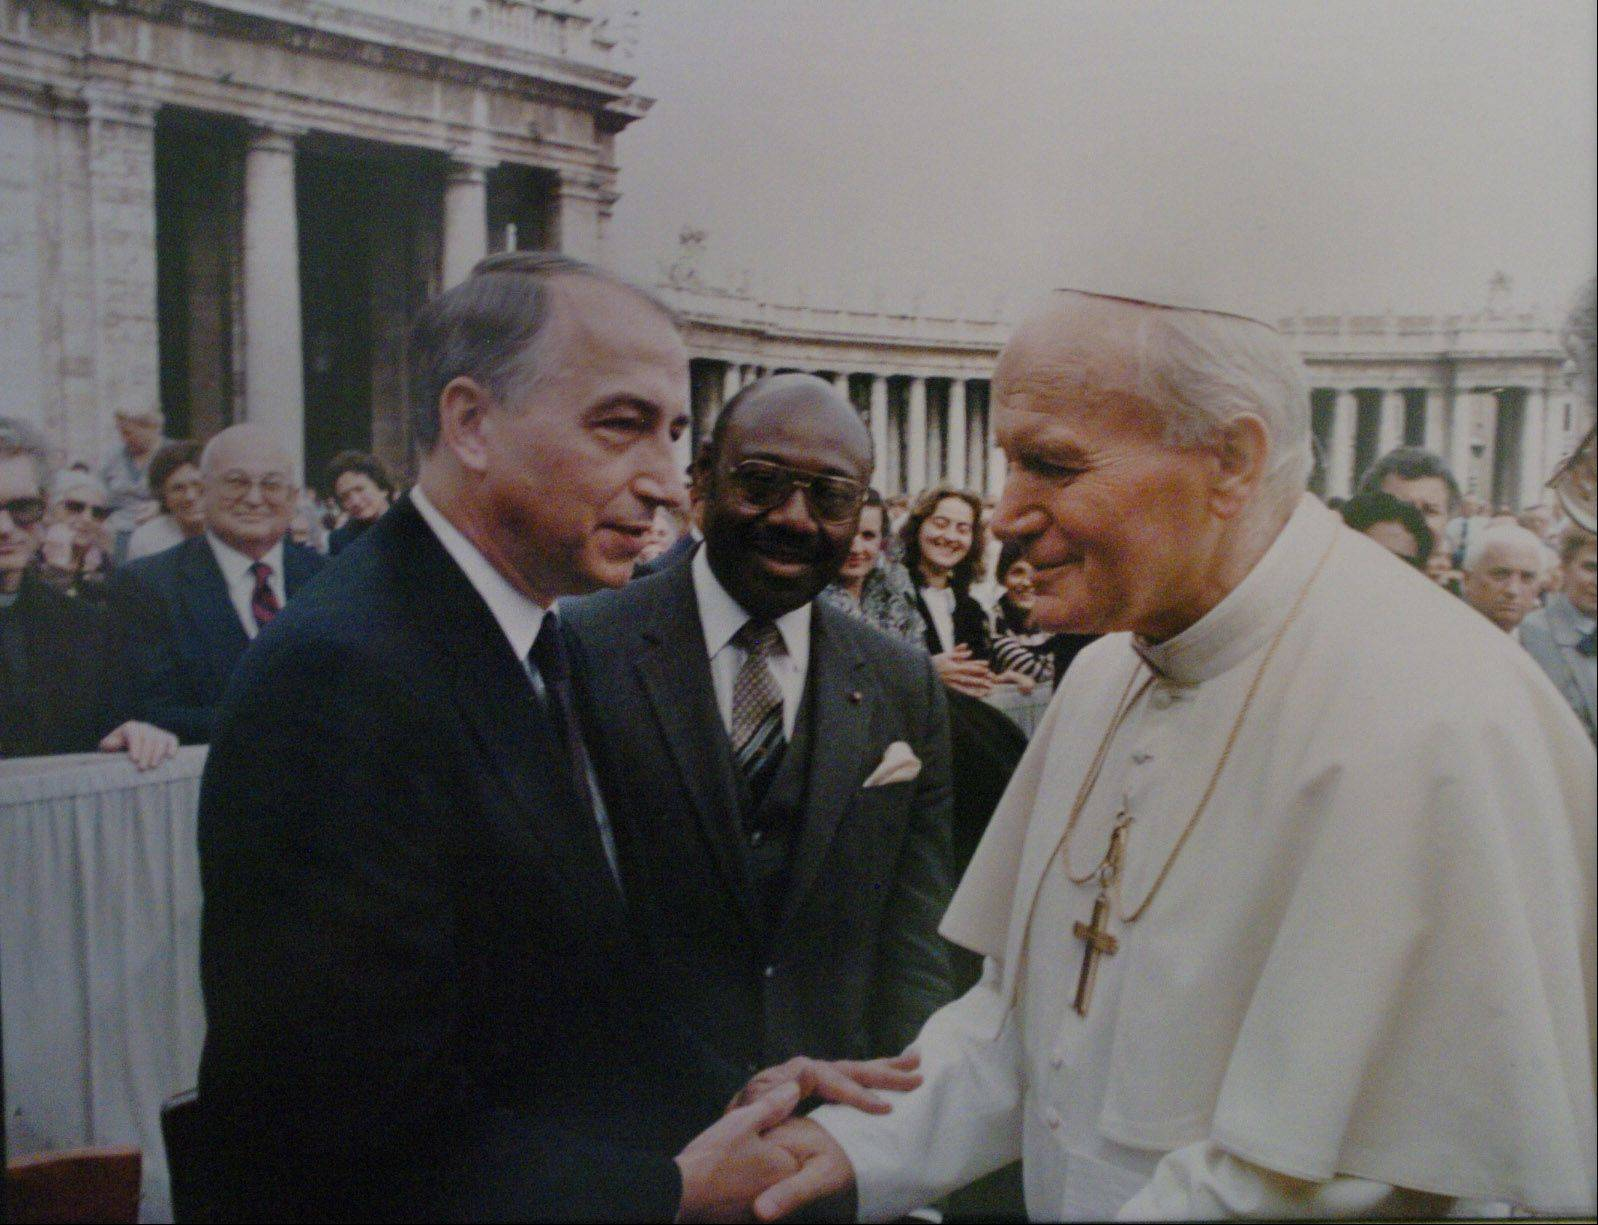 John Kordek, former U.S. Ambassador to Botswana, meeting Pope John Paul II at the Vatican with a diplomatic delegation.